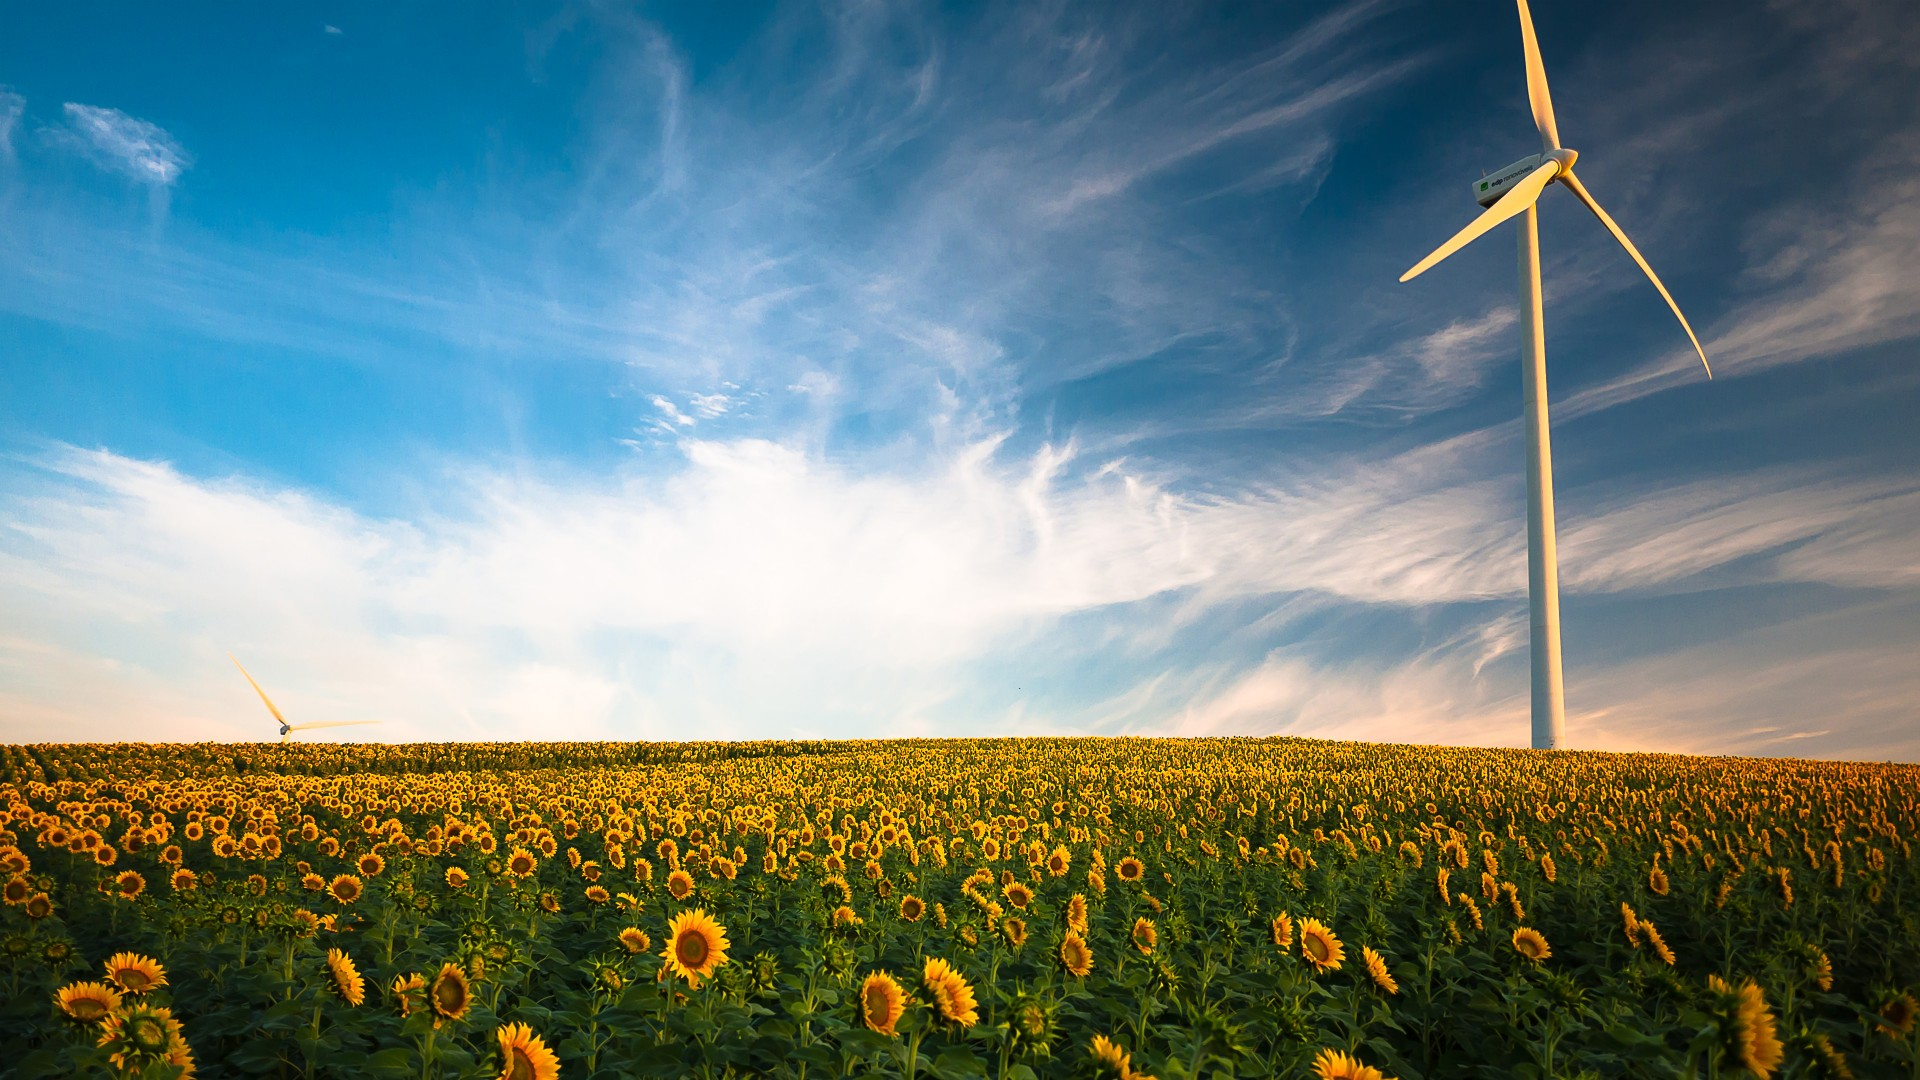 Free 3d Wallpapers For Pc Downloads Wind Turbine Sunflower Field 4k Wallpapers Hd Wallpapers